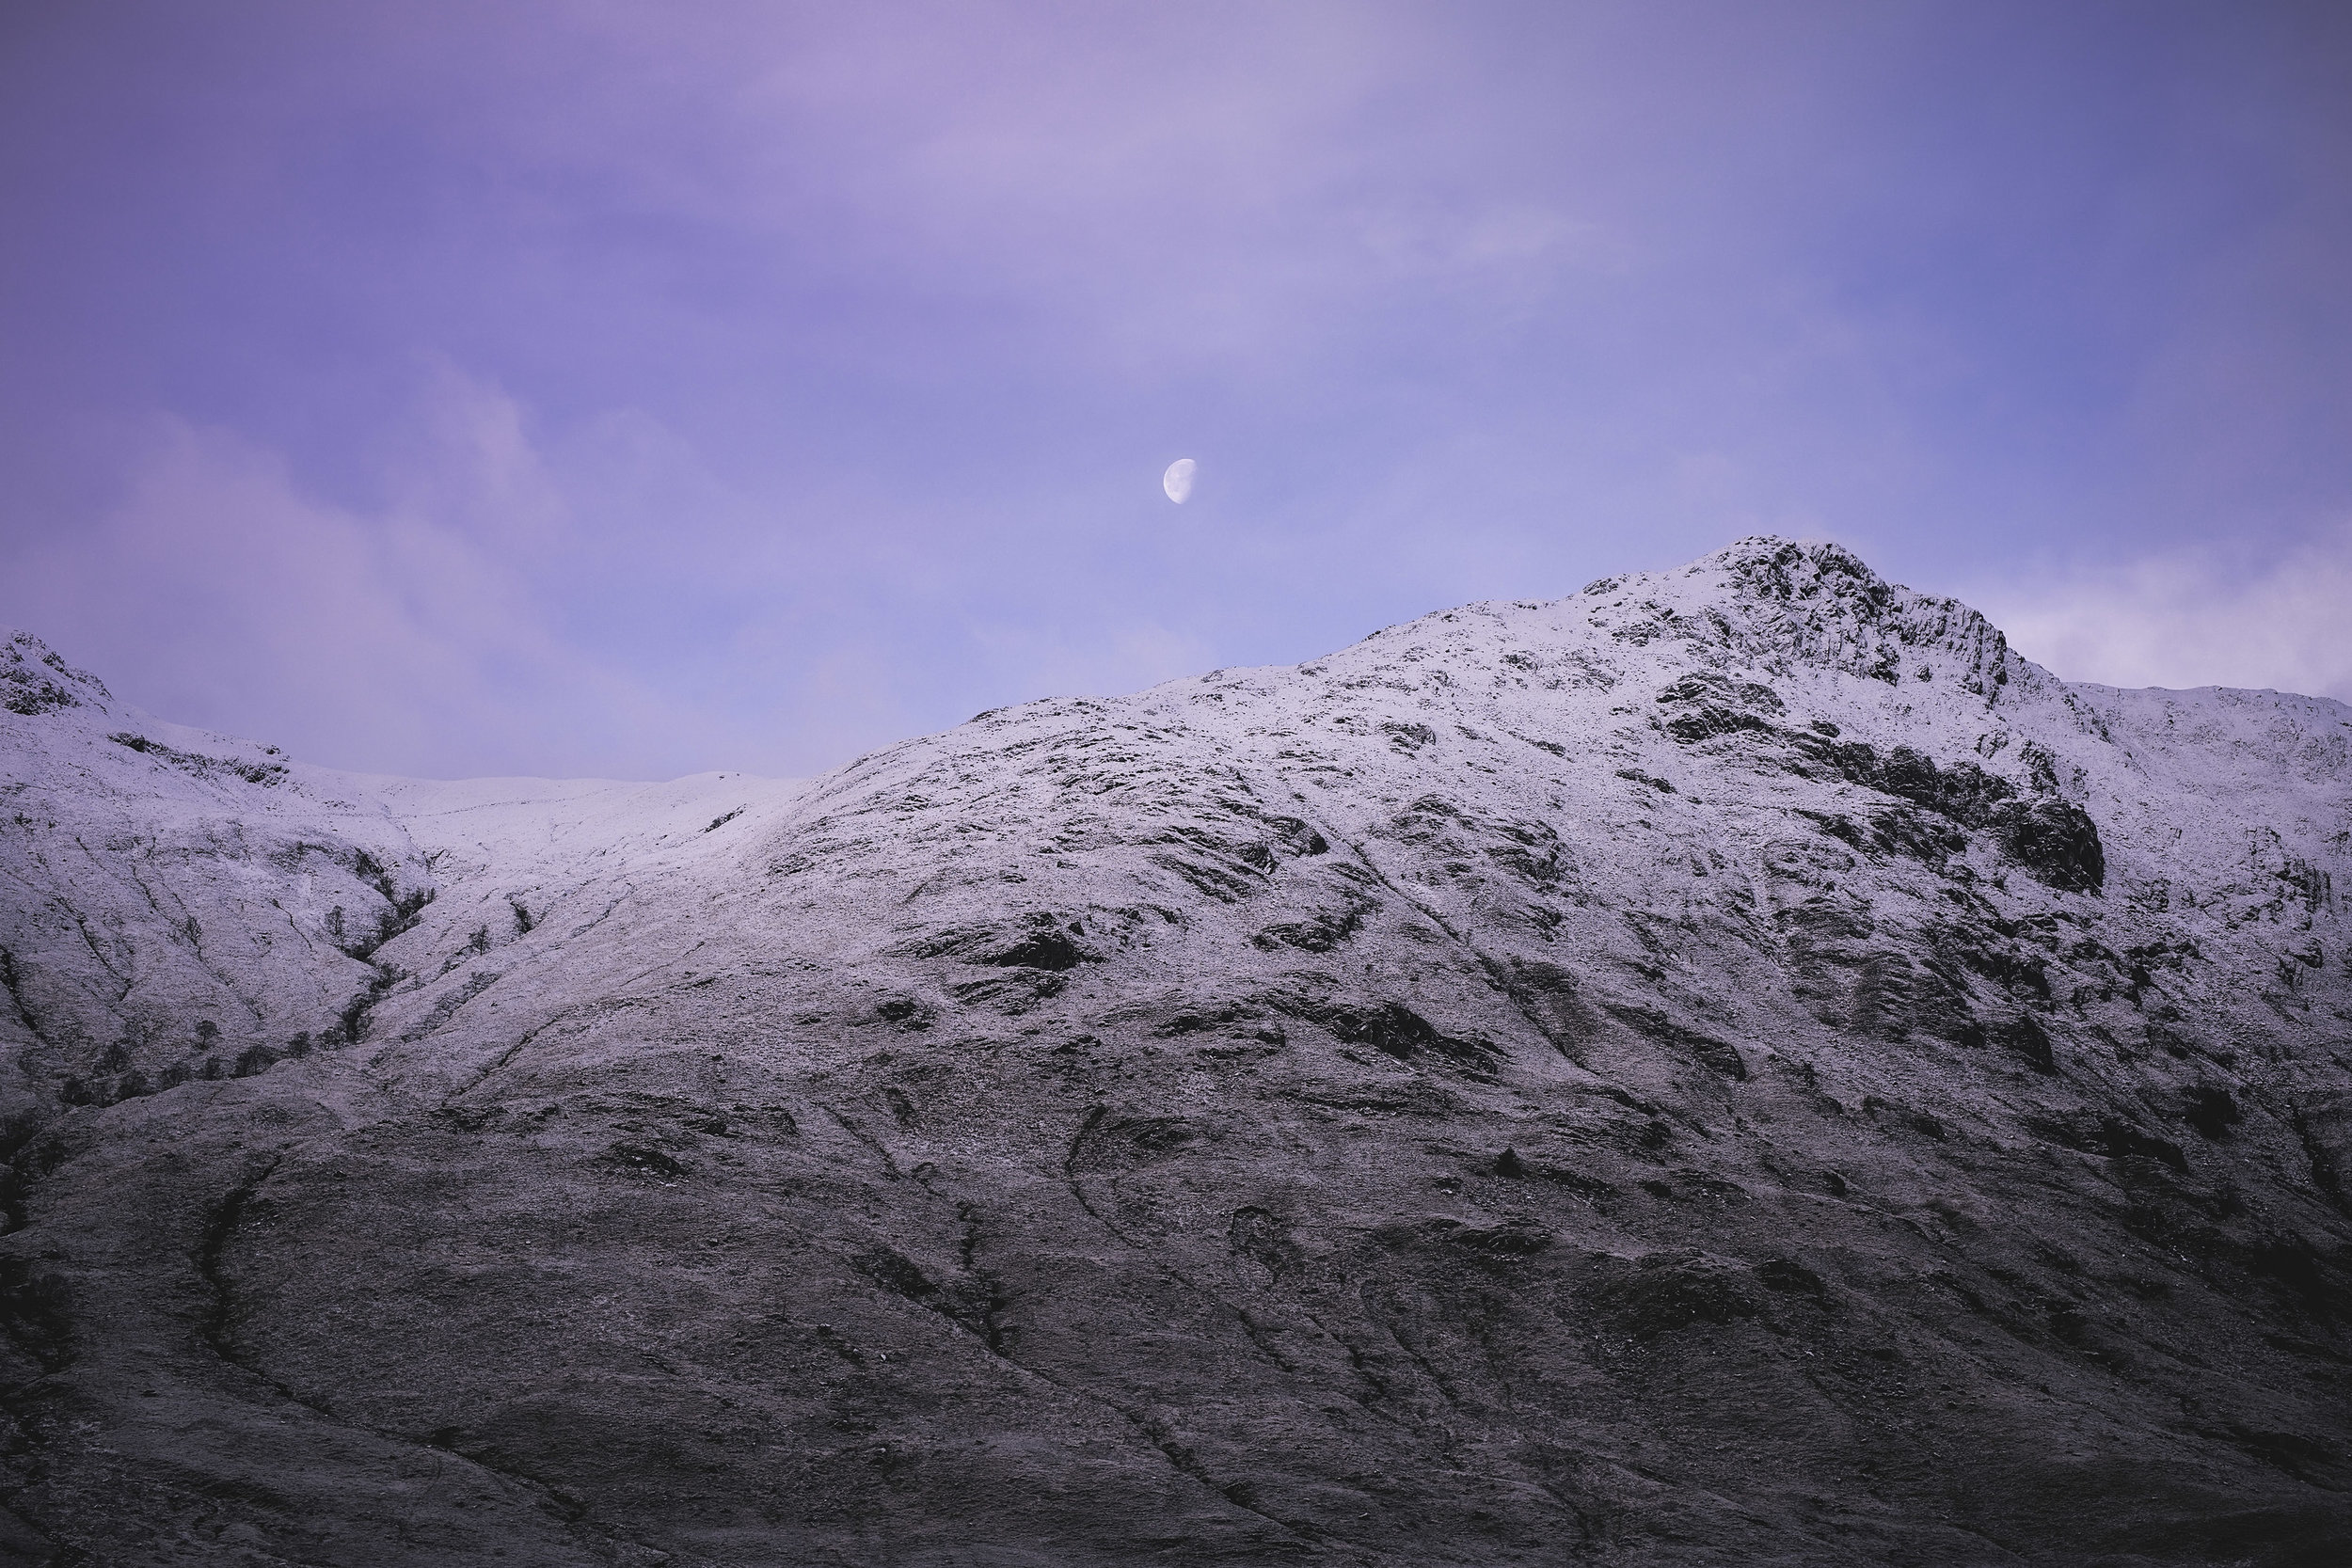 You get to see views like this! Purple skies and the moon, what more could you want.